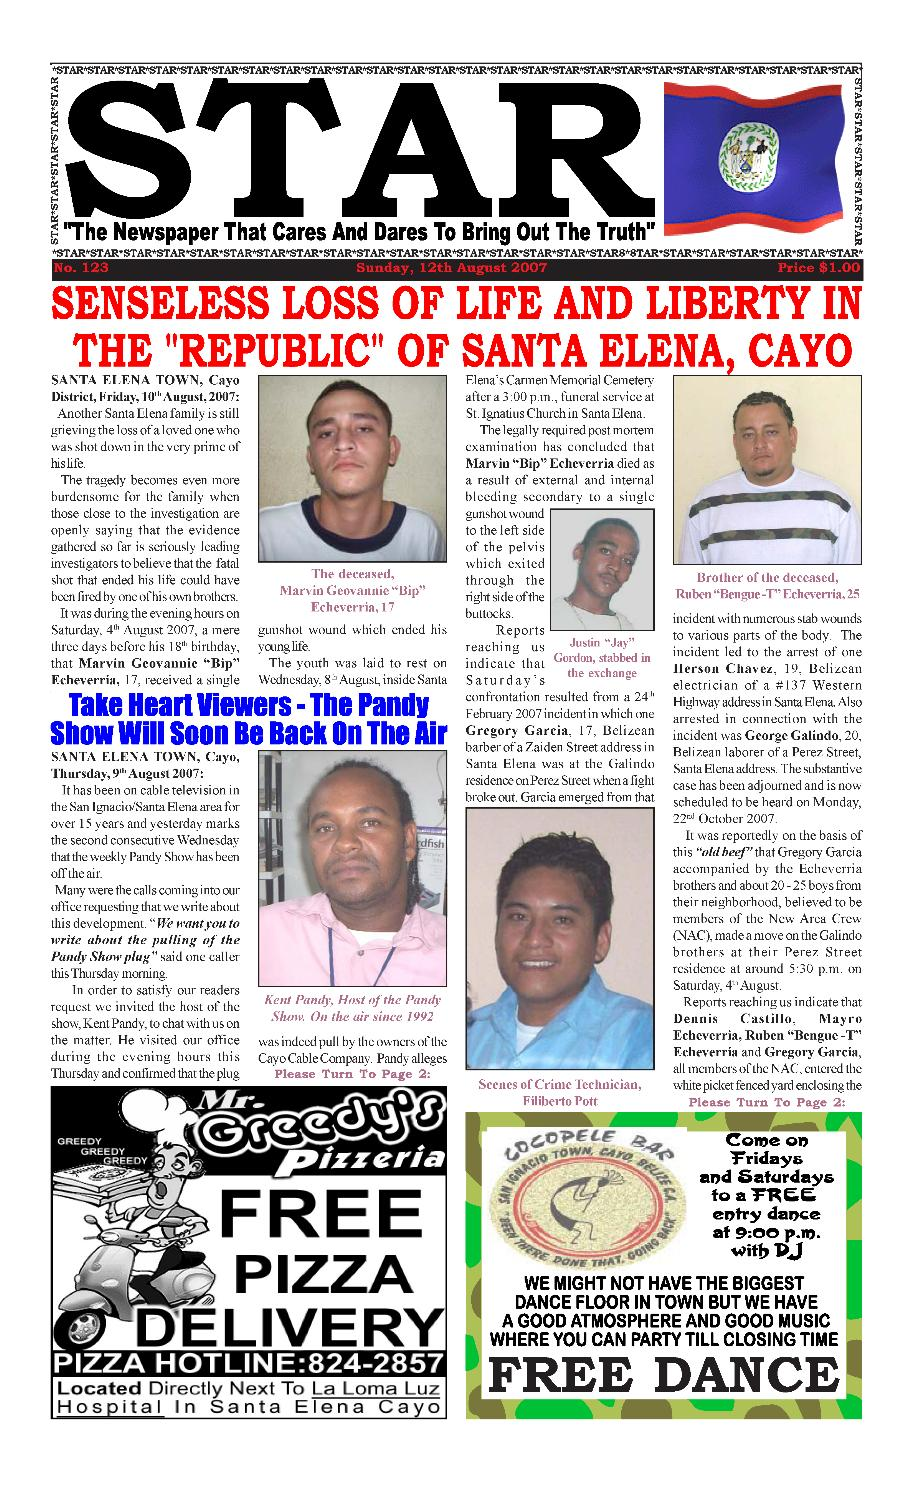 STAR Newspaper - page 1